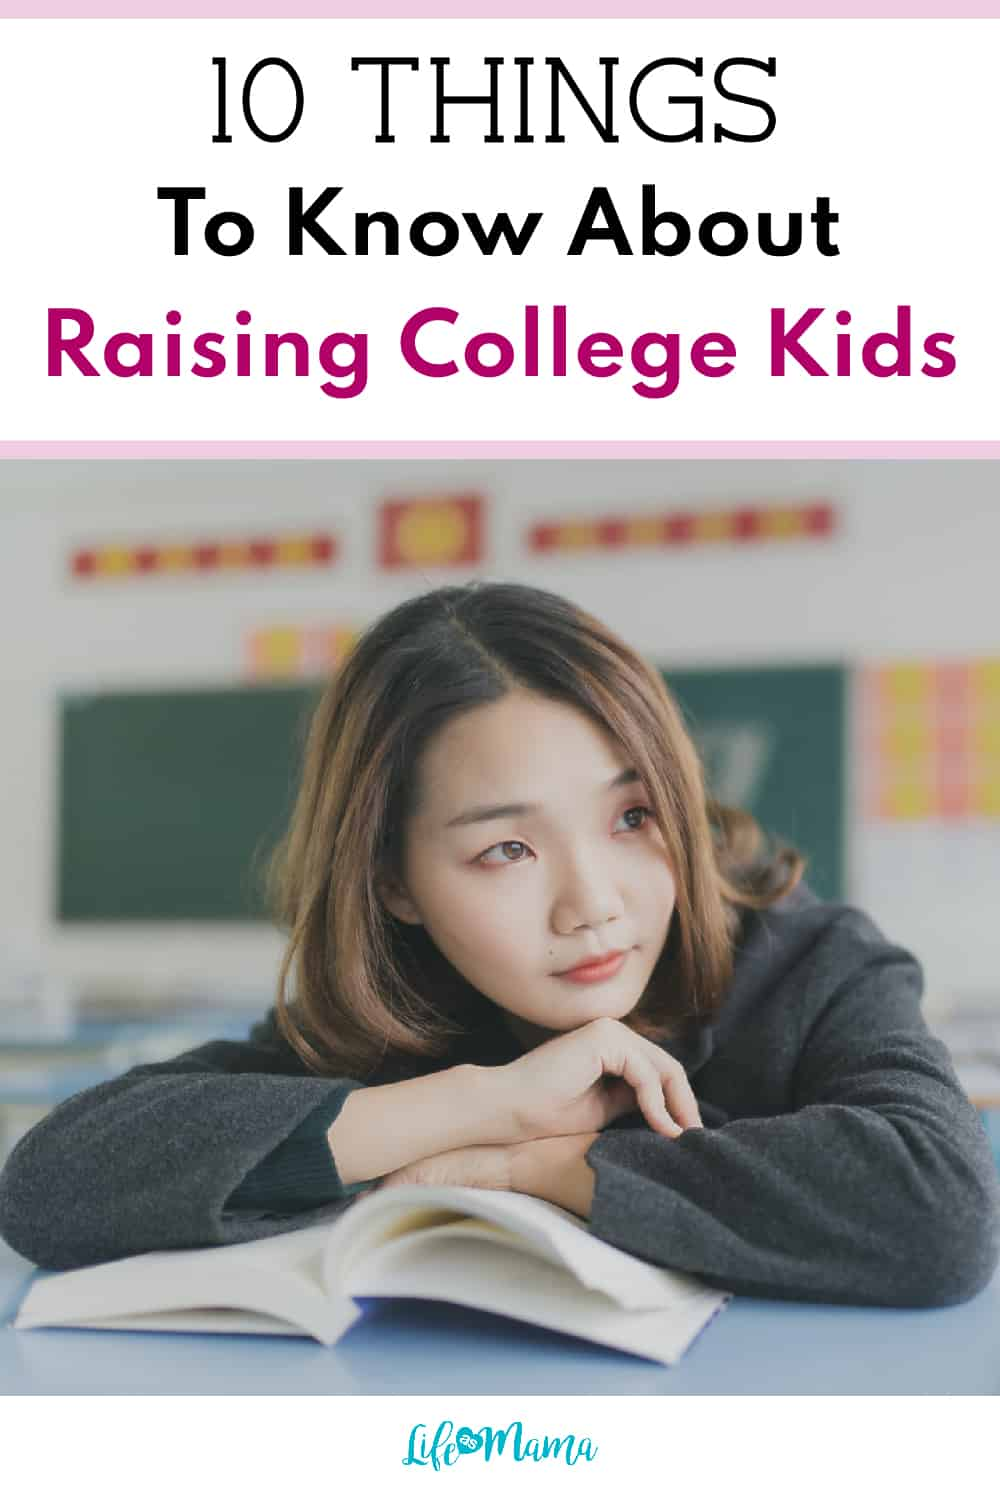 10 Things To Know About Raising College Kids